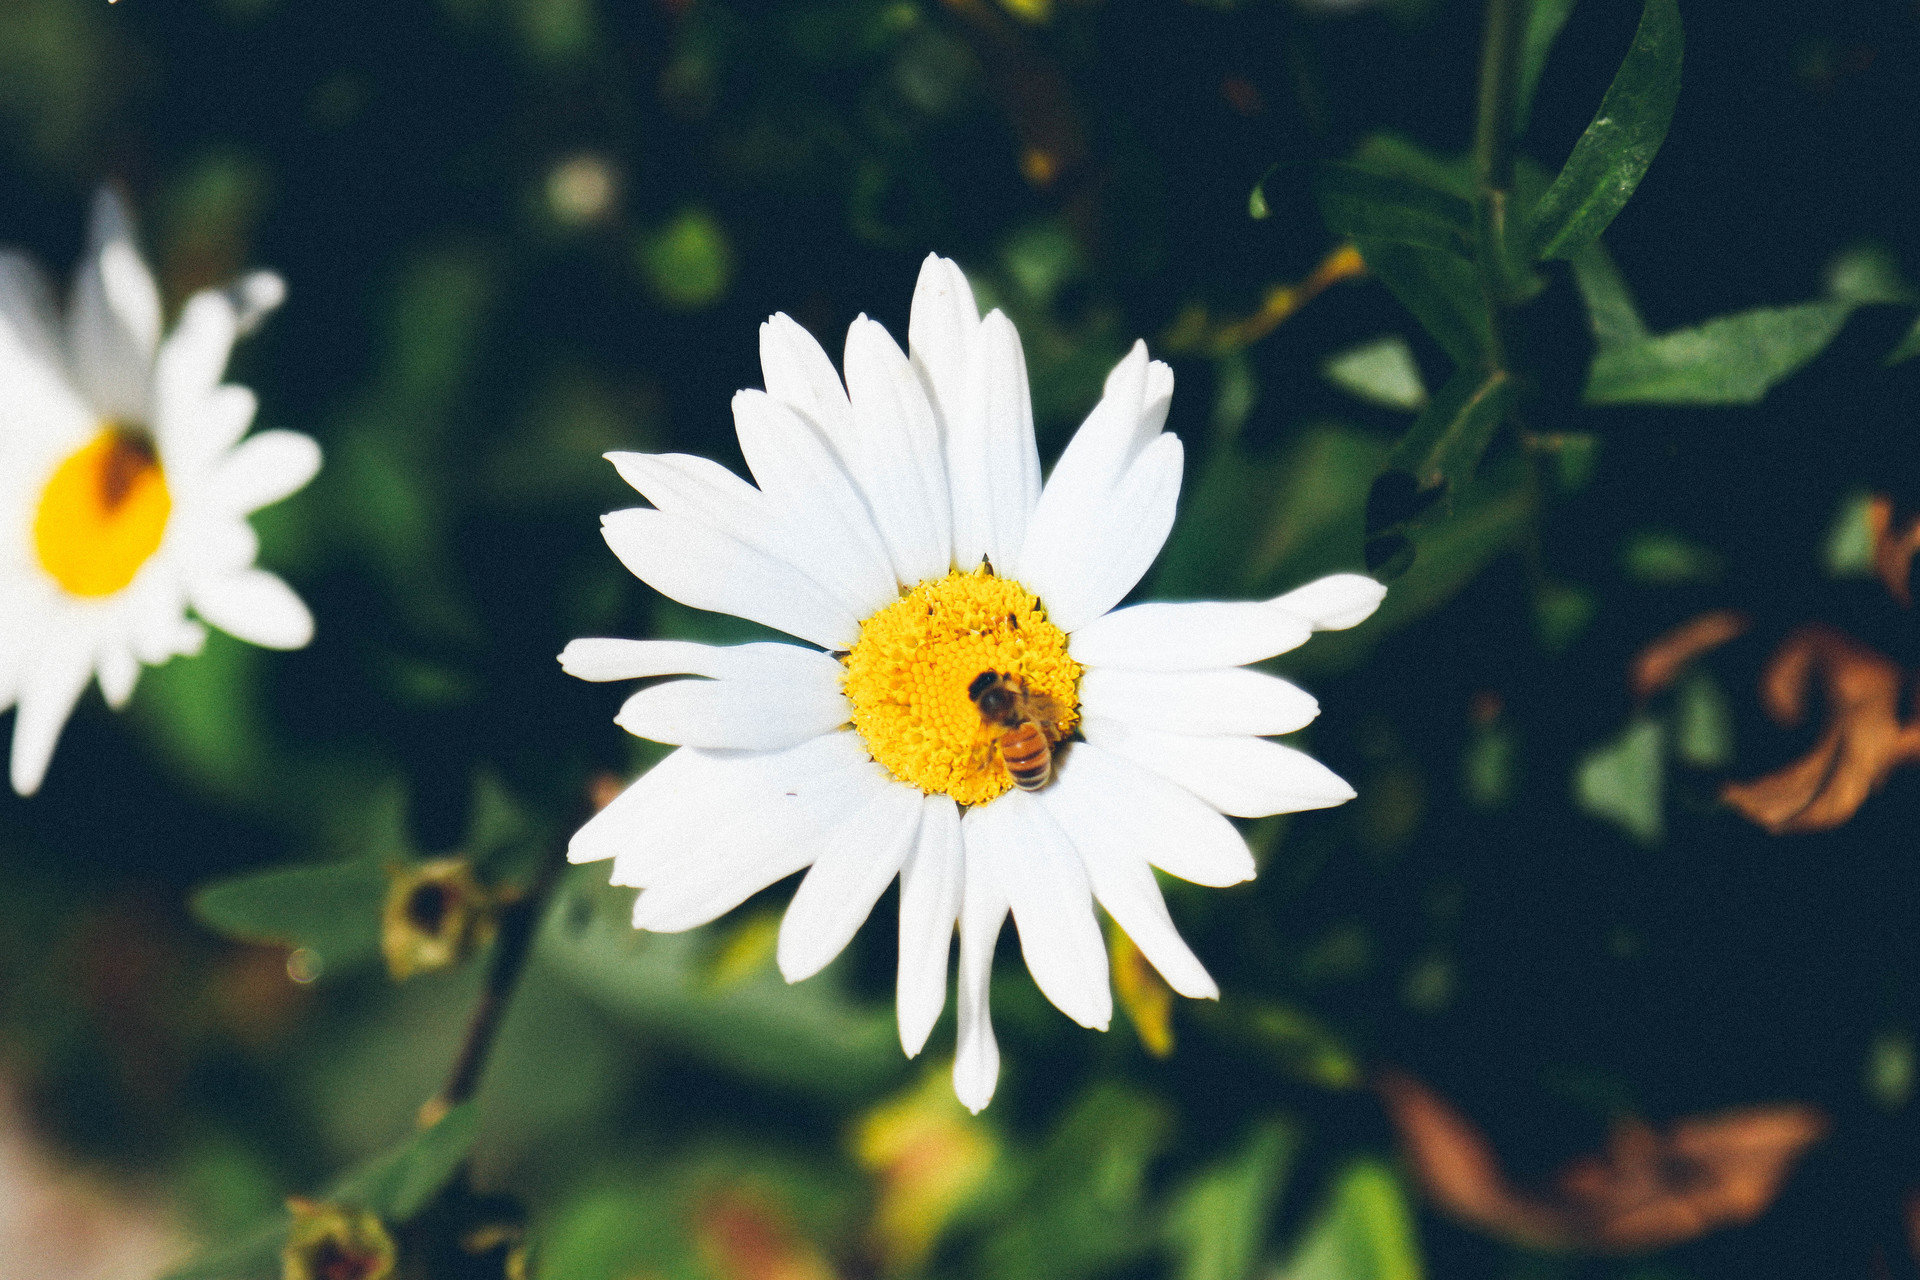 Jetsetter Guides Road Trips plant flower Nature flora oxeye daisy yellow daisy macro photography botany land plant close up petal daisy family flowering plant wildflower sunlight blossom plant stem chamaemelum nobile